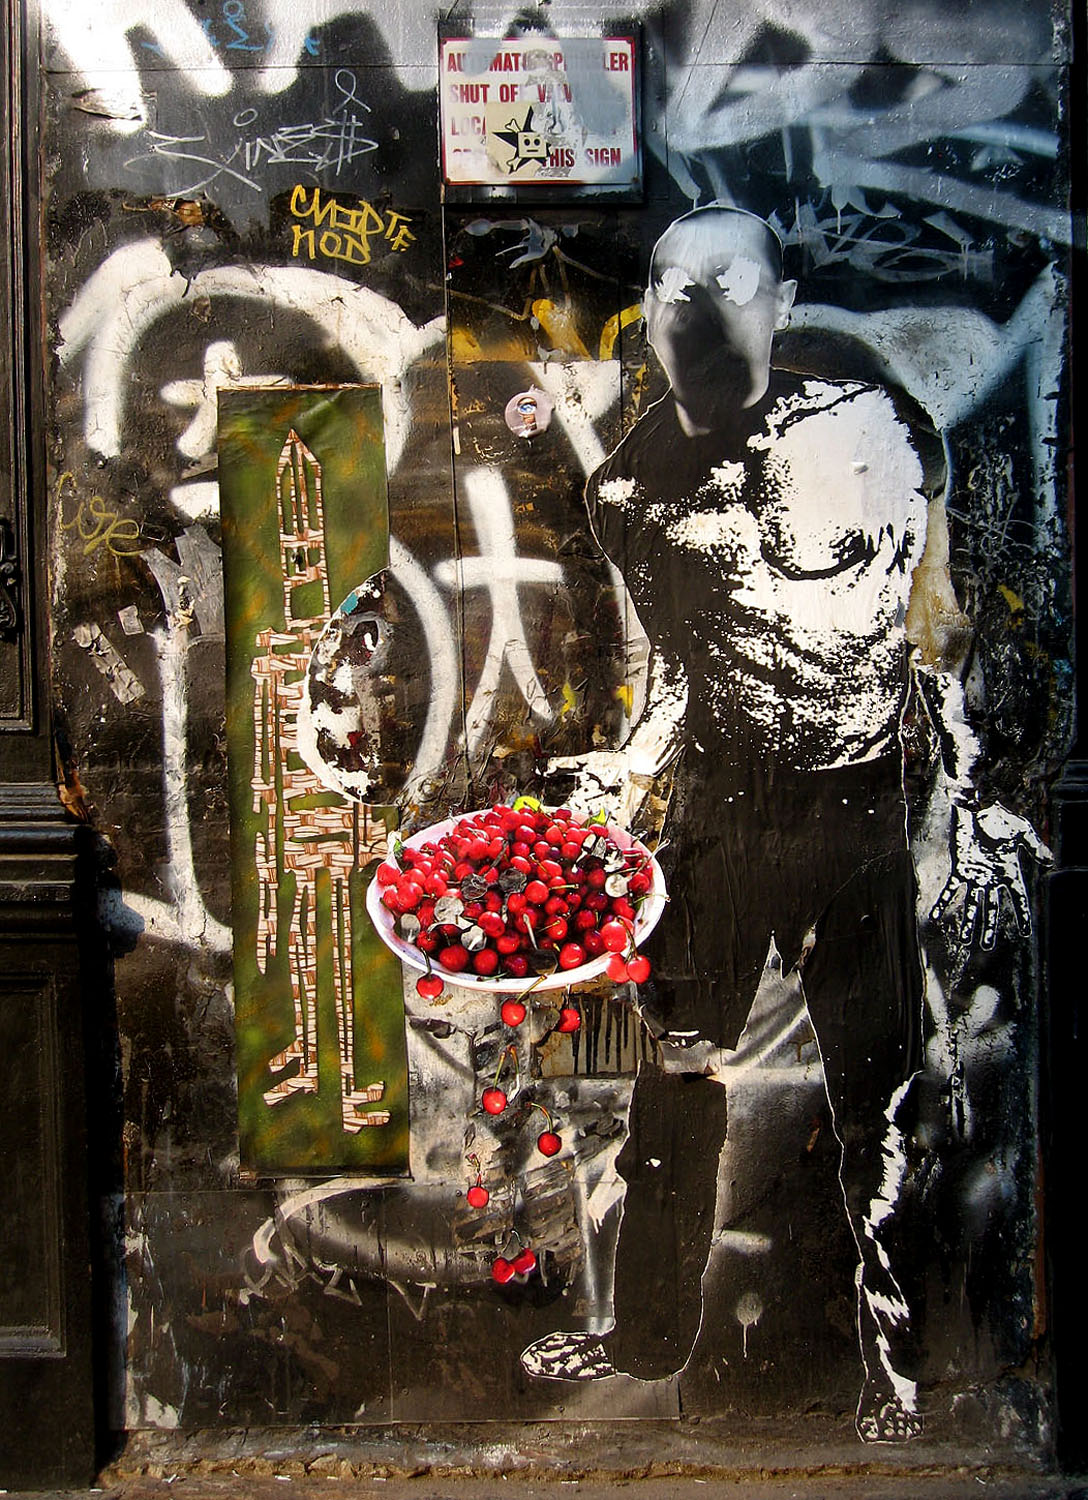 Bowl of Cherries on Howard St., NYC